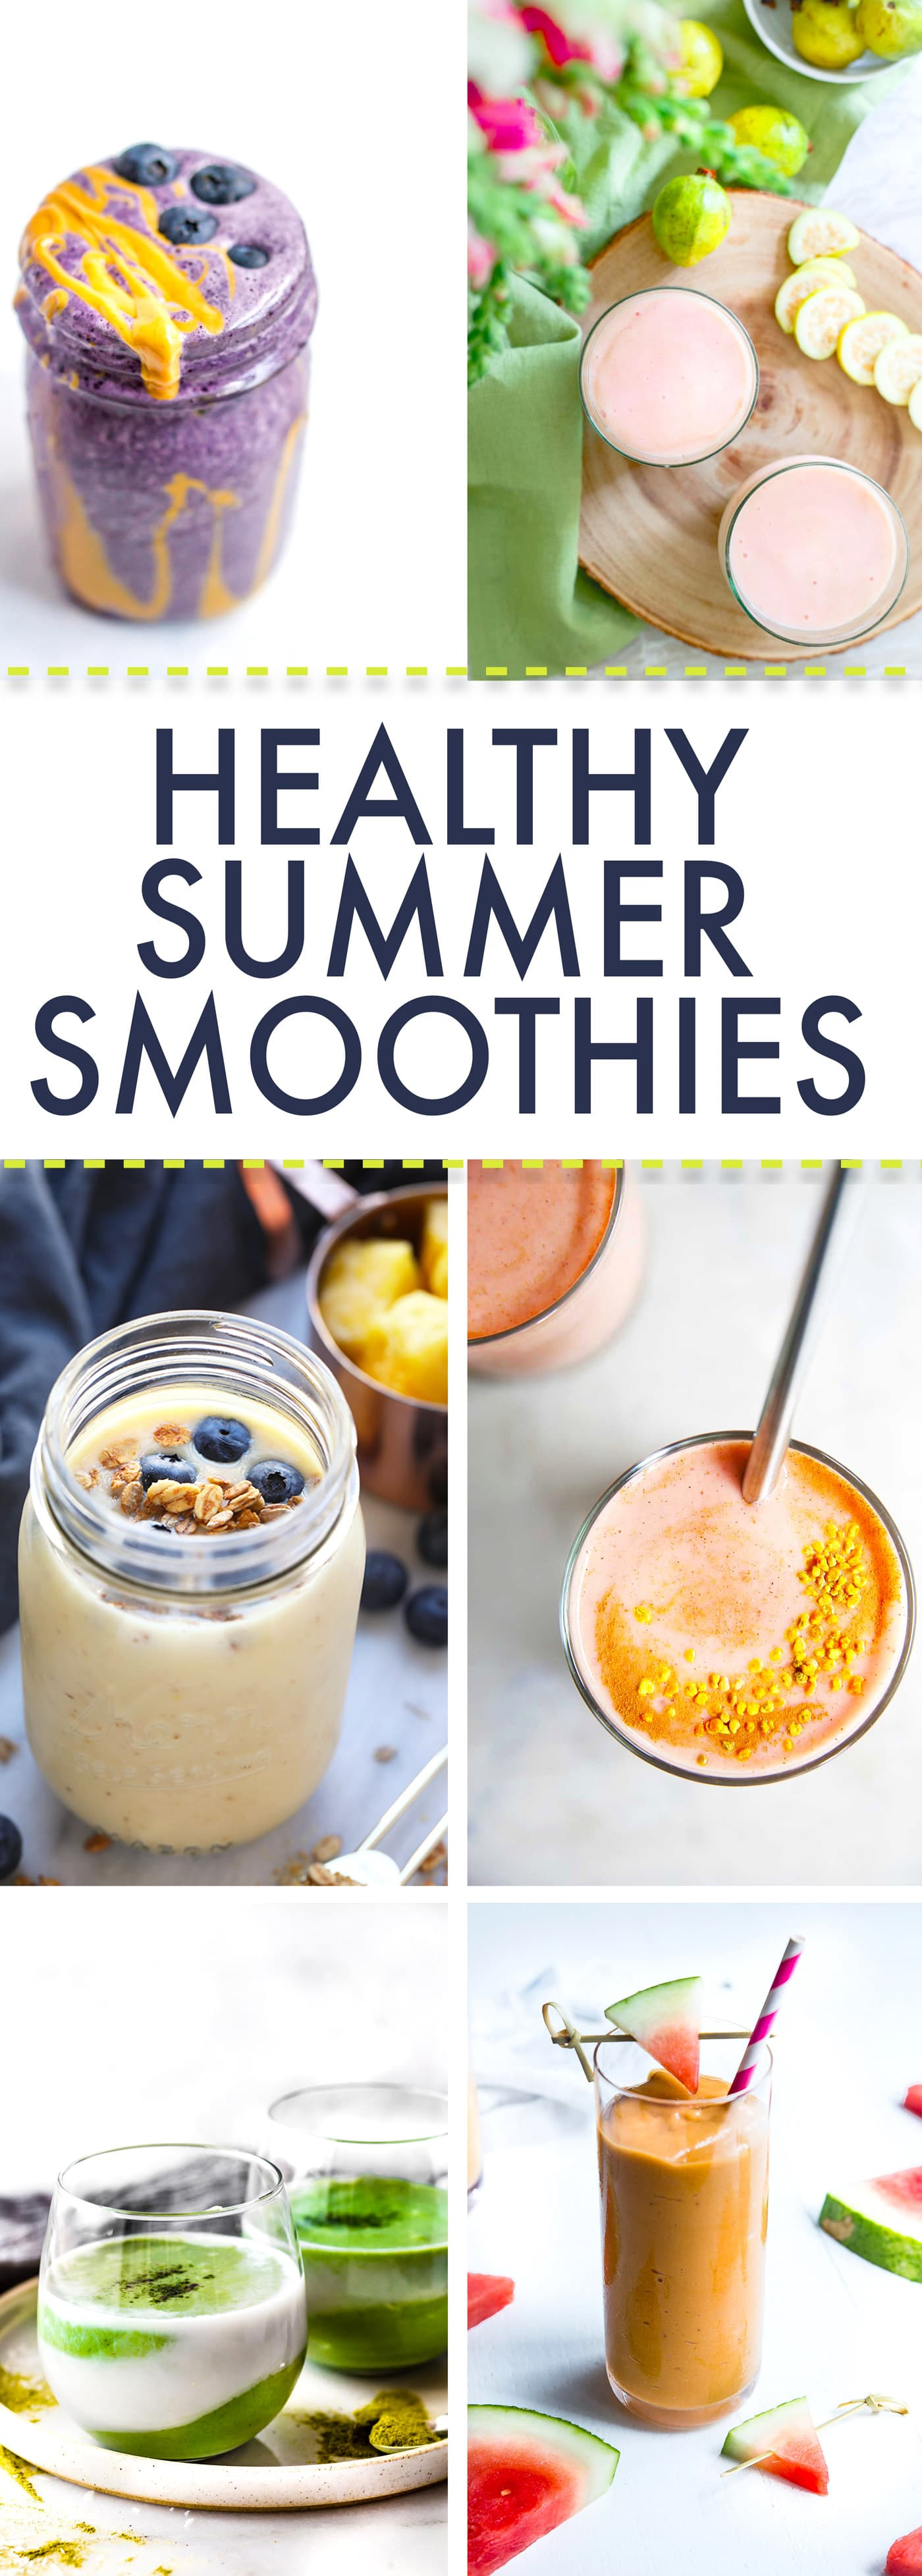 Healthy summer Smoothies! Superfood smoothies to make all summer long. Easy, delicious, nutritious!